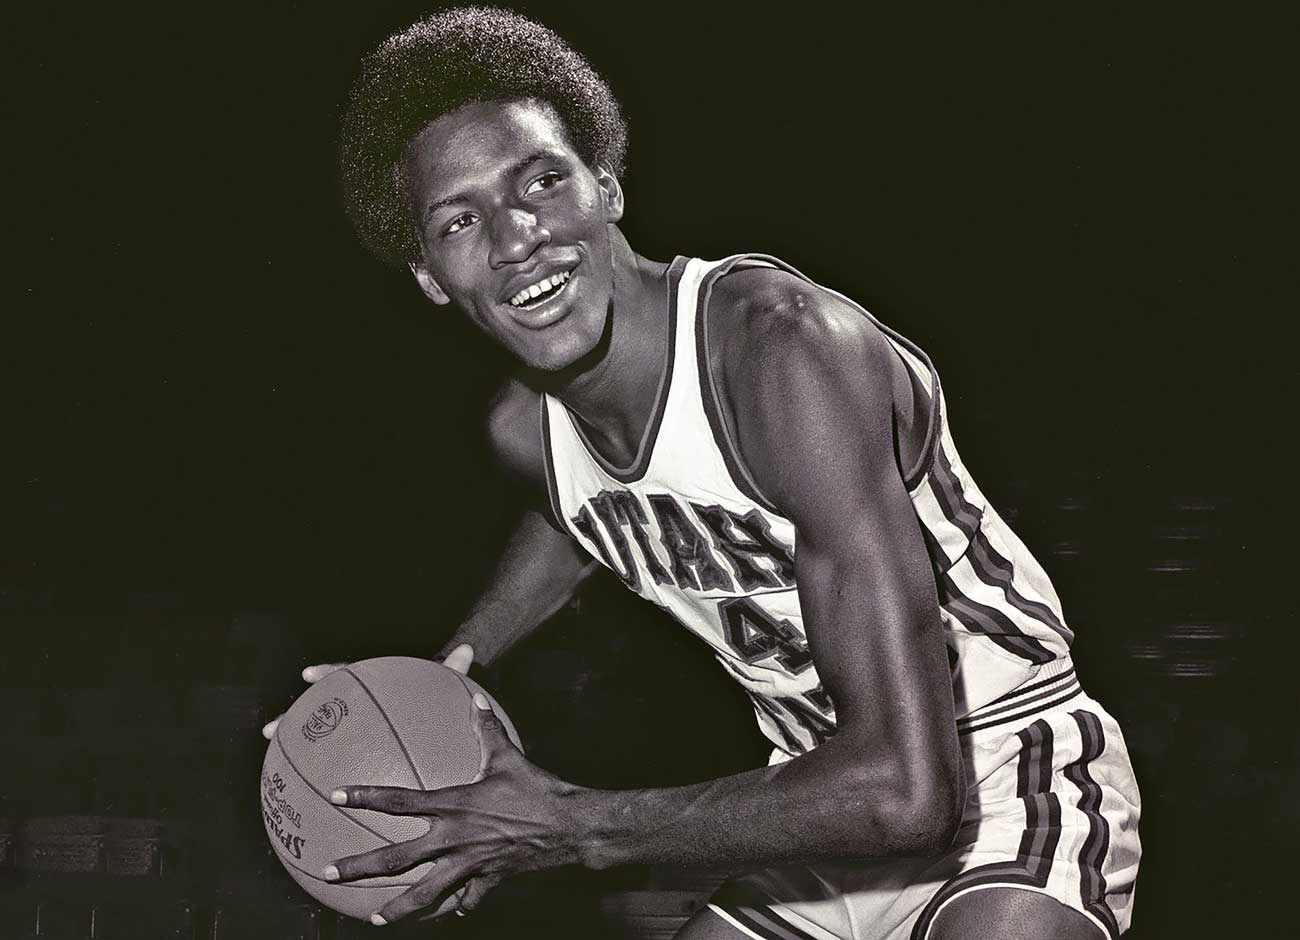 a young Black basketball player holds a ball dressed in his uniform